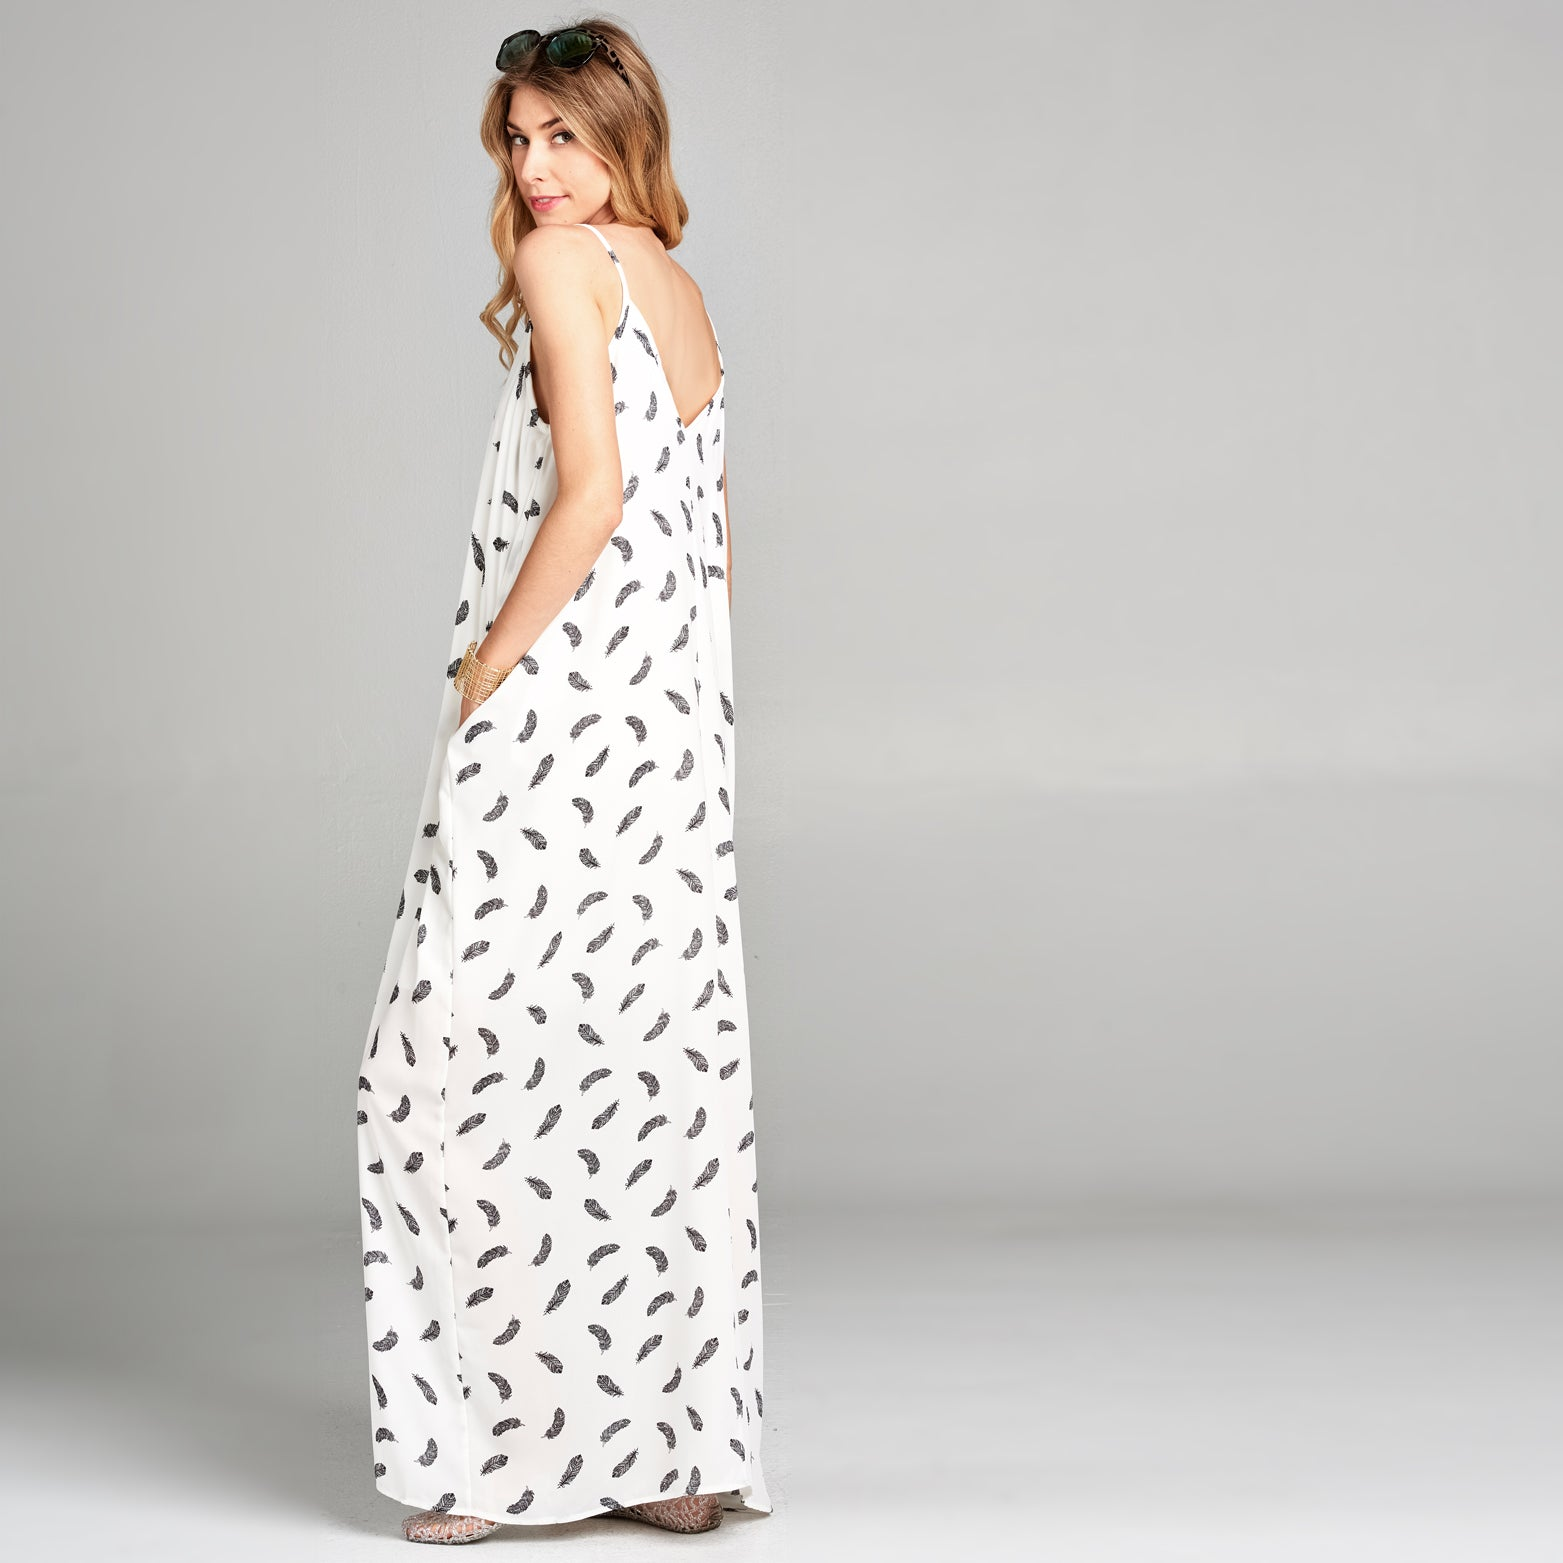 Feather Harem Maxi Dress